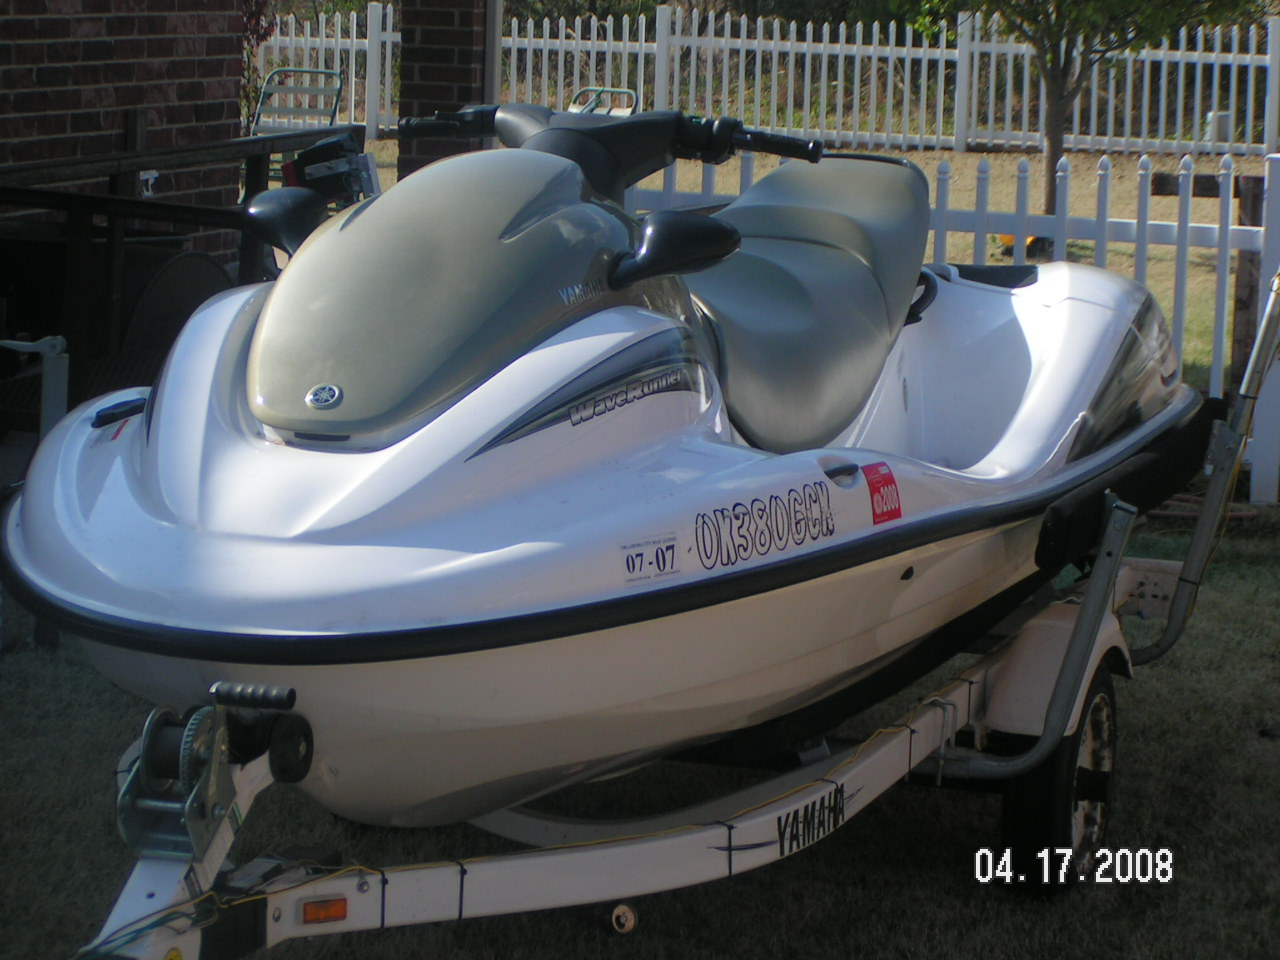 Yamaha Waverunner For Sale >> 2001 Yamaha Waverunner 1200 SUV